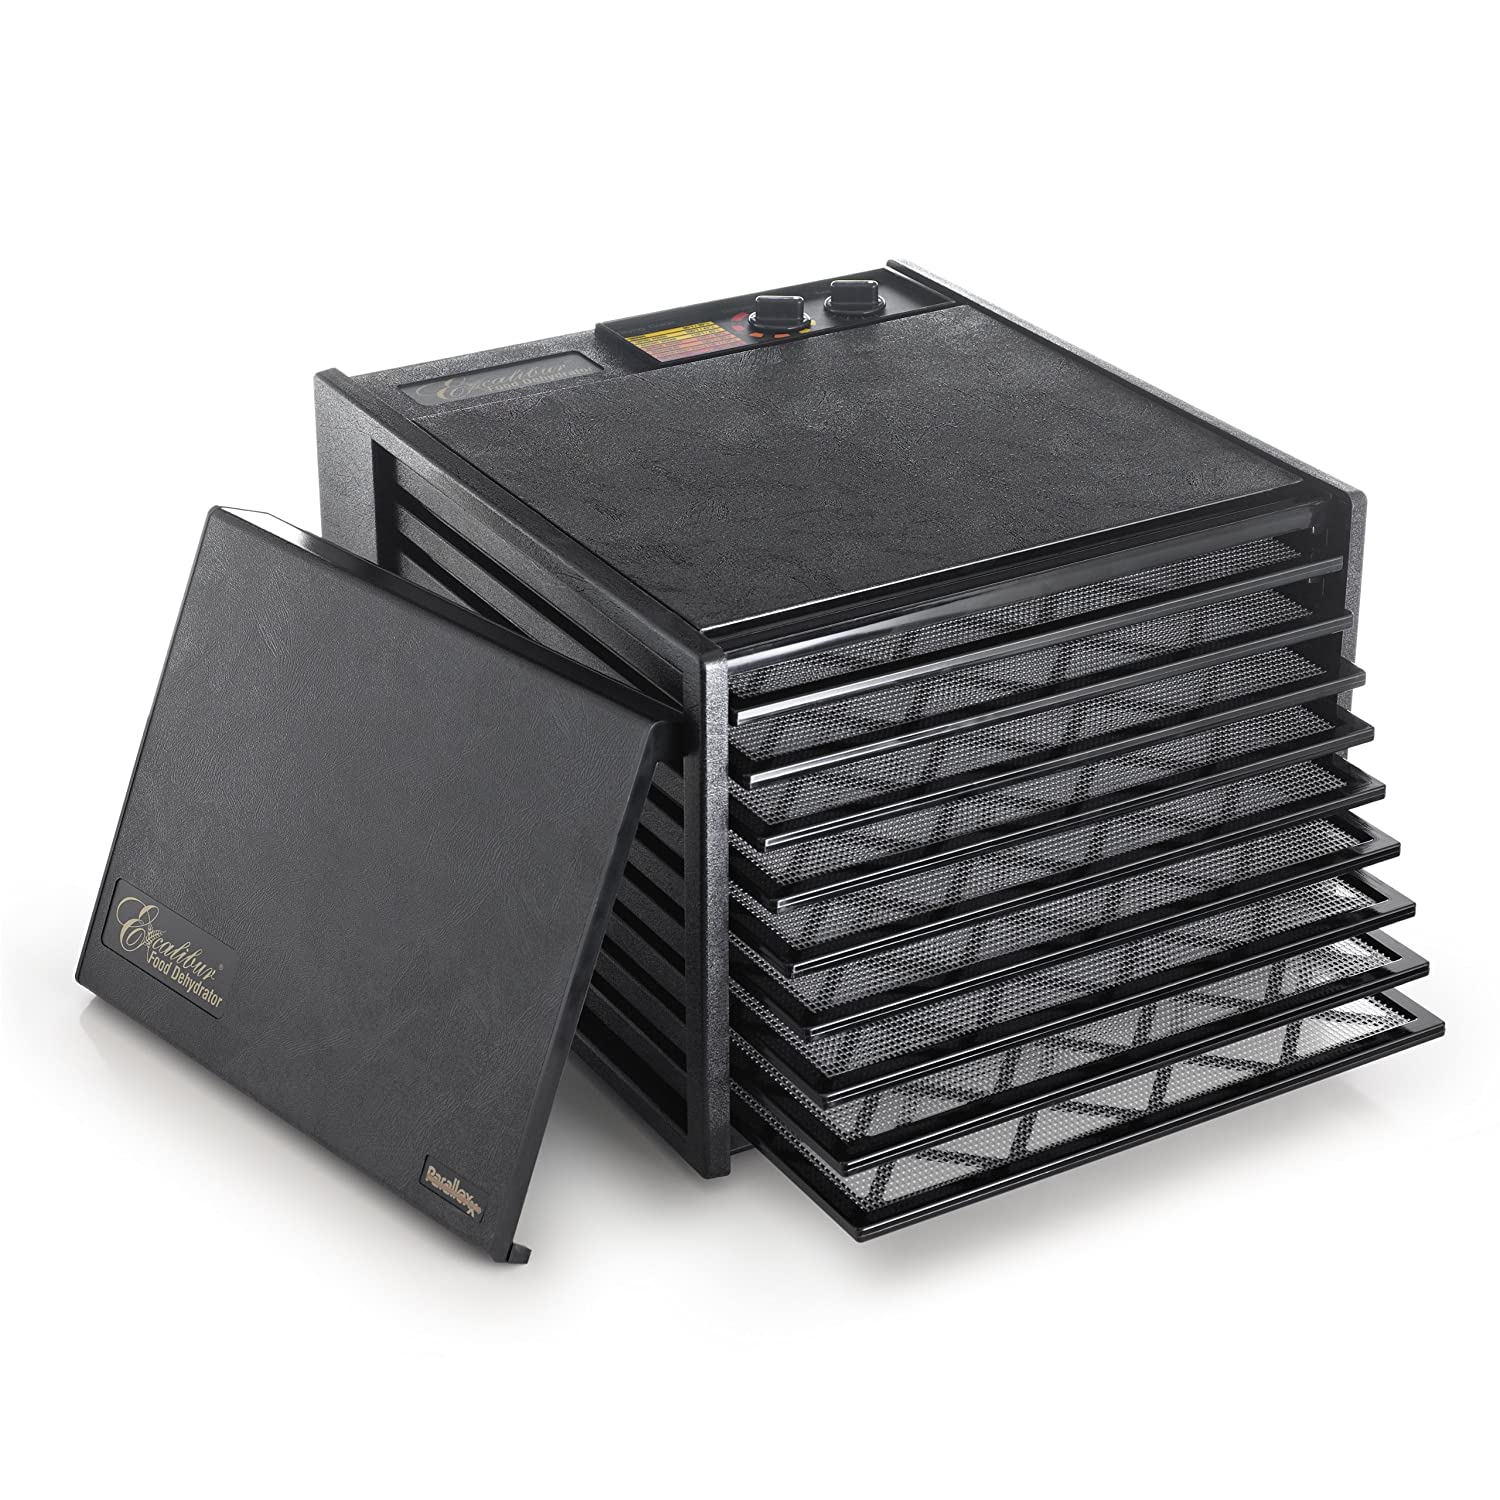 The Excalibur 3926TB is an excellent purchase if you want great-tasting dehydrated food.